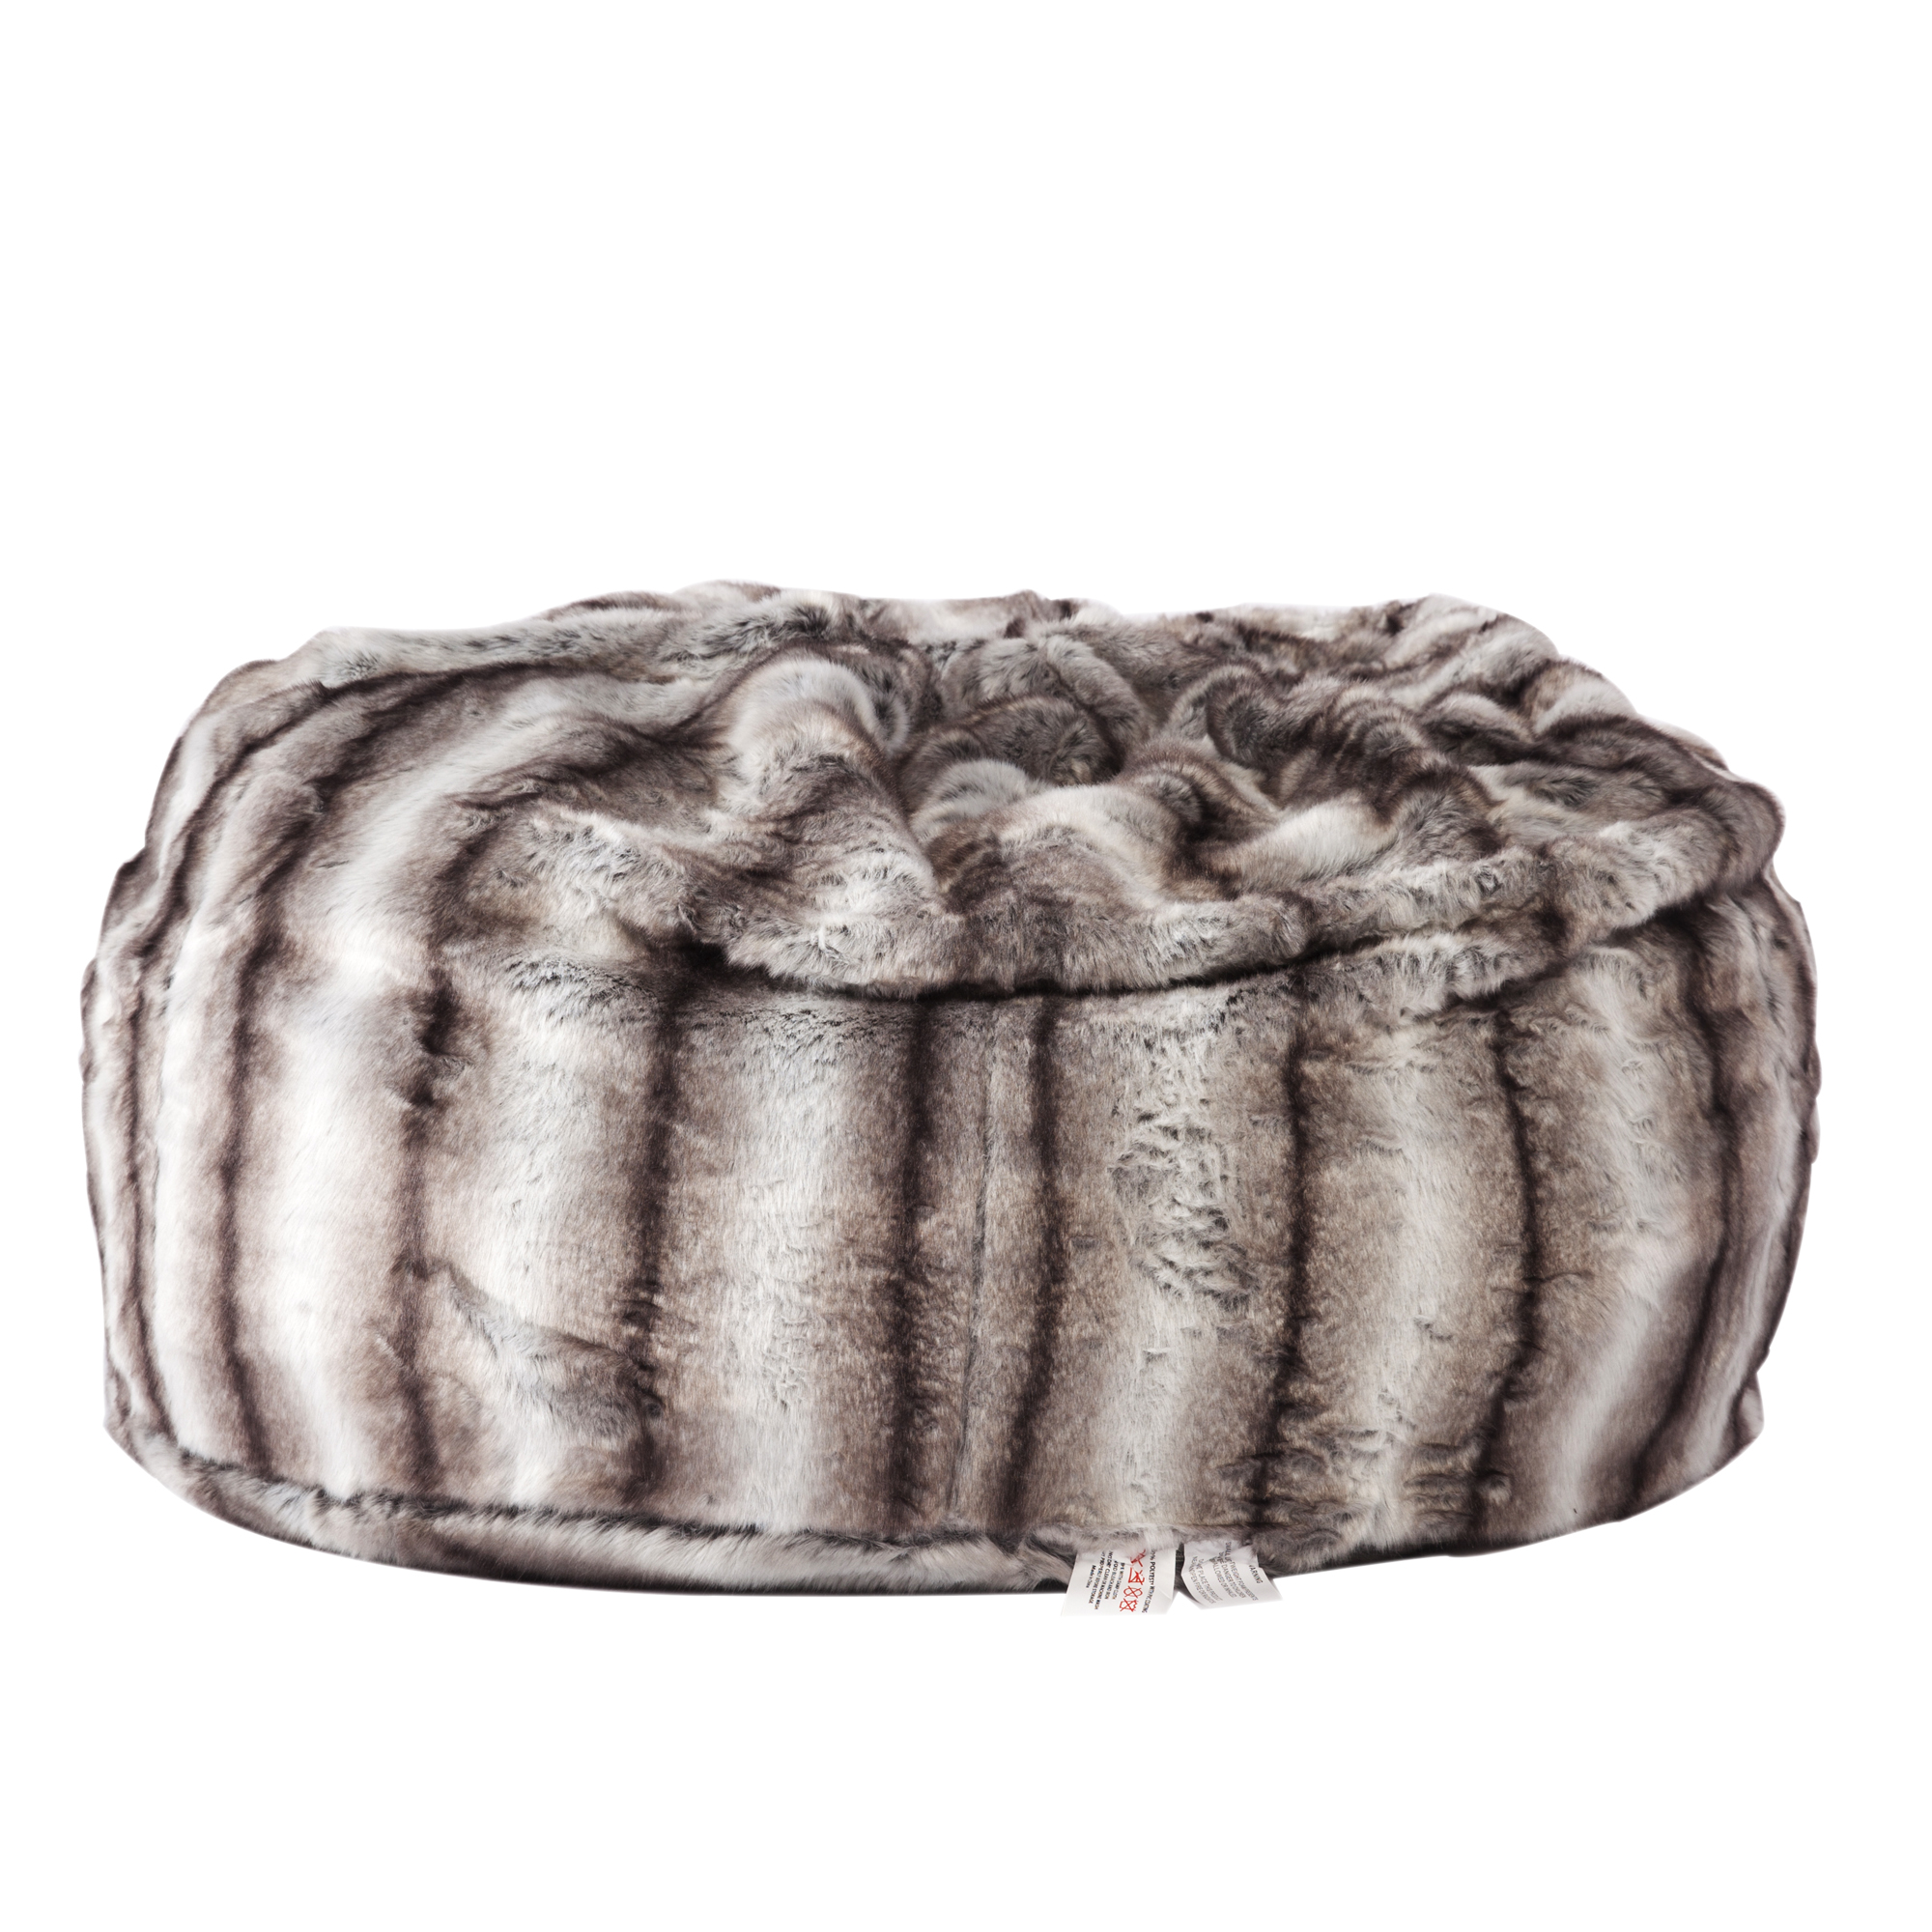 Super Us 106 99 Faux Fur Bean Bag Chair Luxury And Comfy Big Beanless Bag Chairs Plush Furry Chair Soft Sofa Lounger For Adults And Kids Sponge In Cushion Machost Co Dining Chair Design Ideas Machostcouk